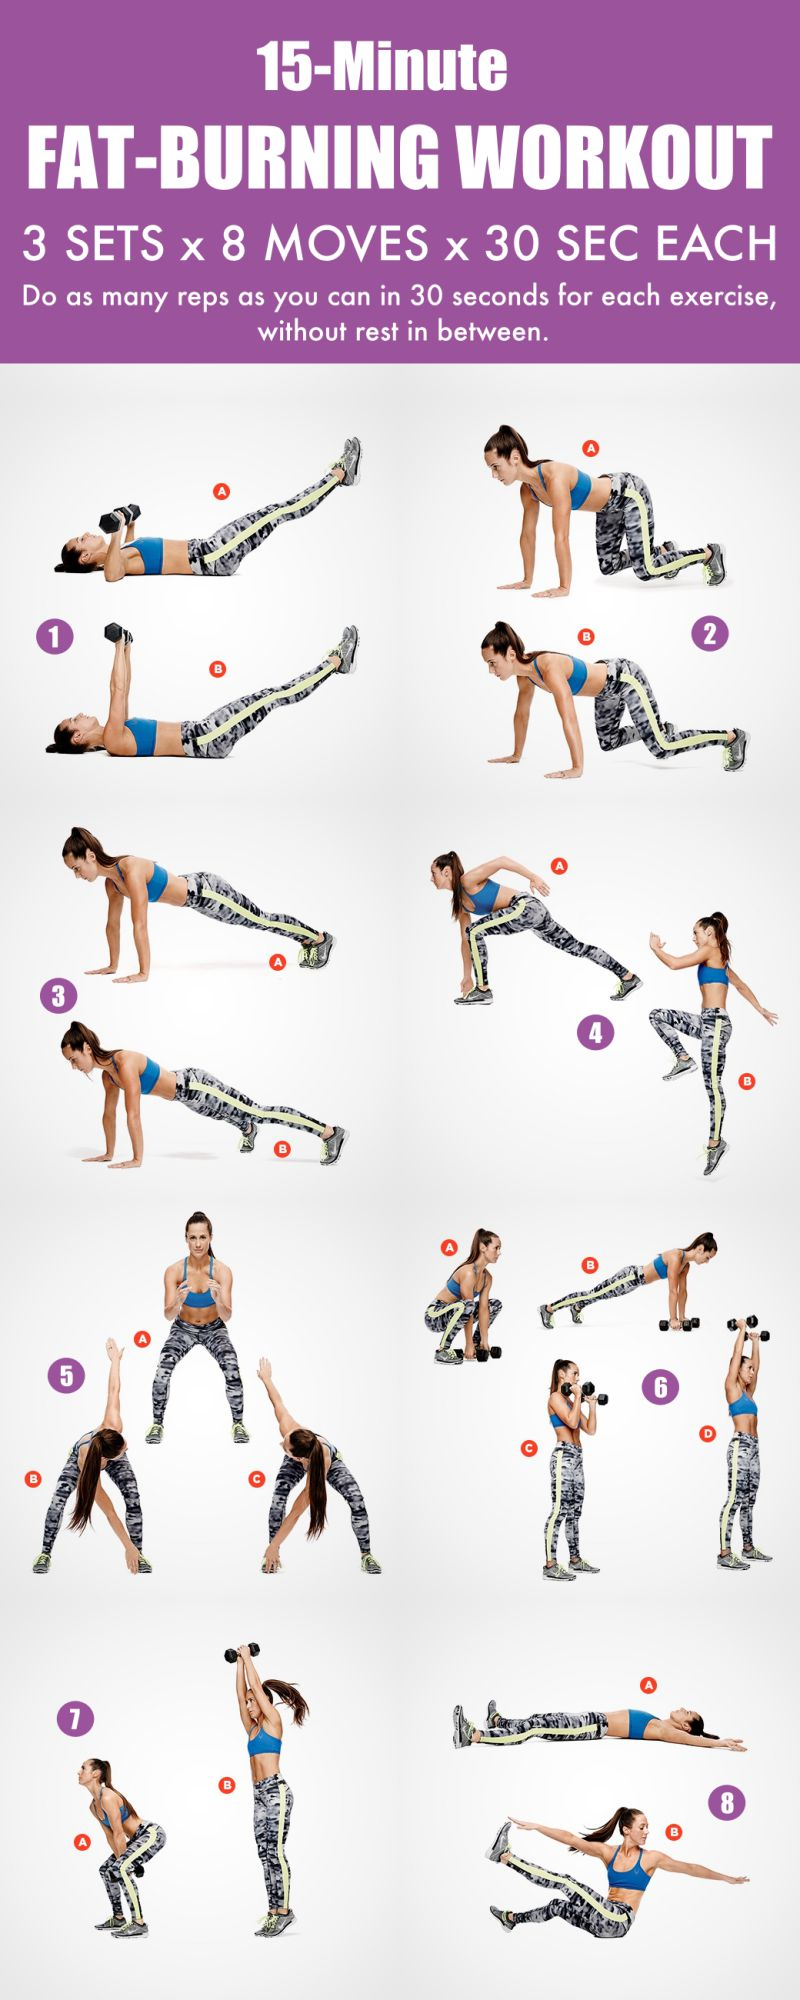 15 Min Fat-Burning Workout